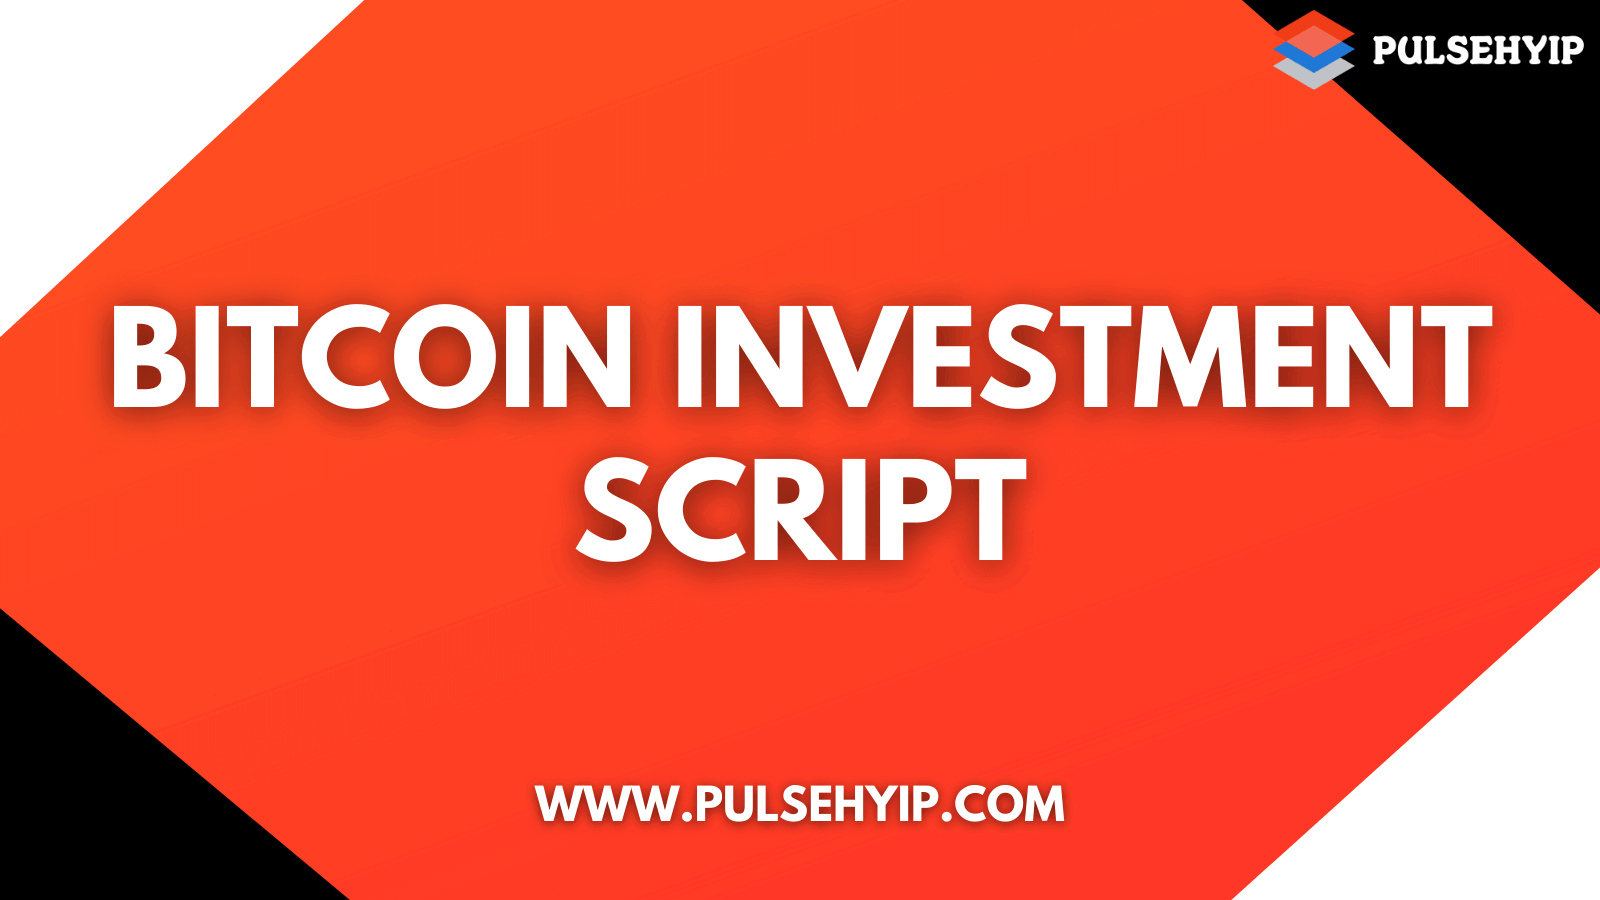 How Bitcoin Investment Script Enables to setup Crypto Investment Business?